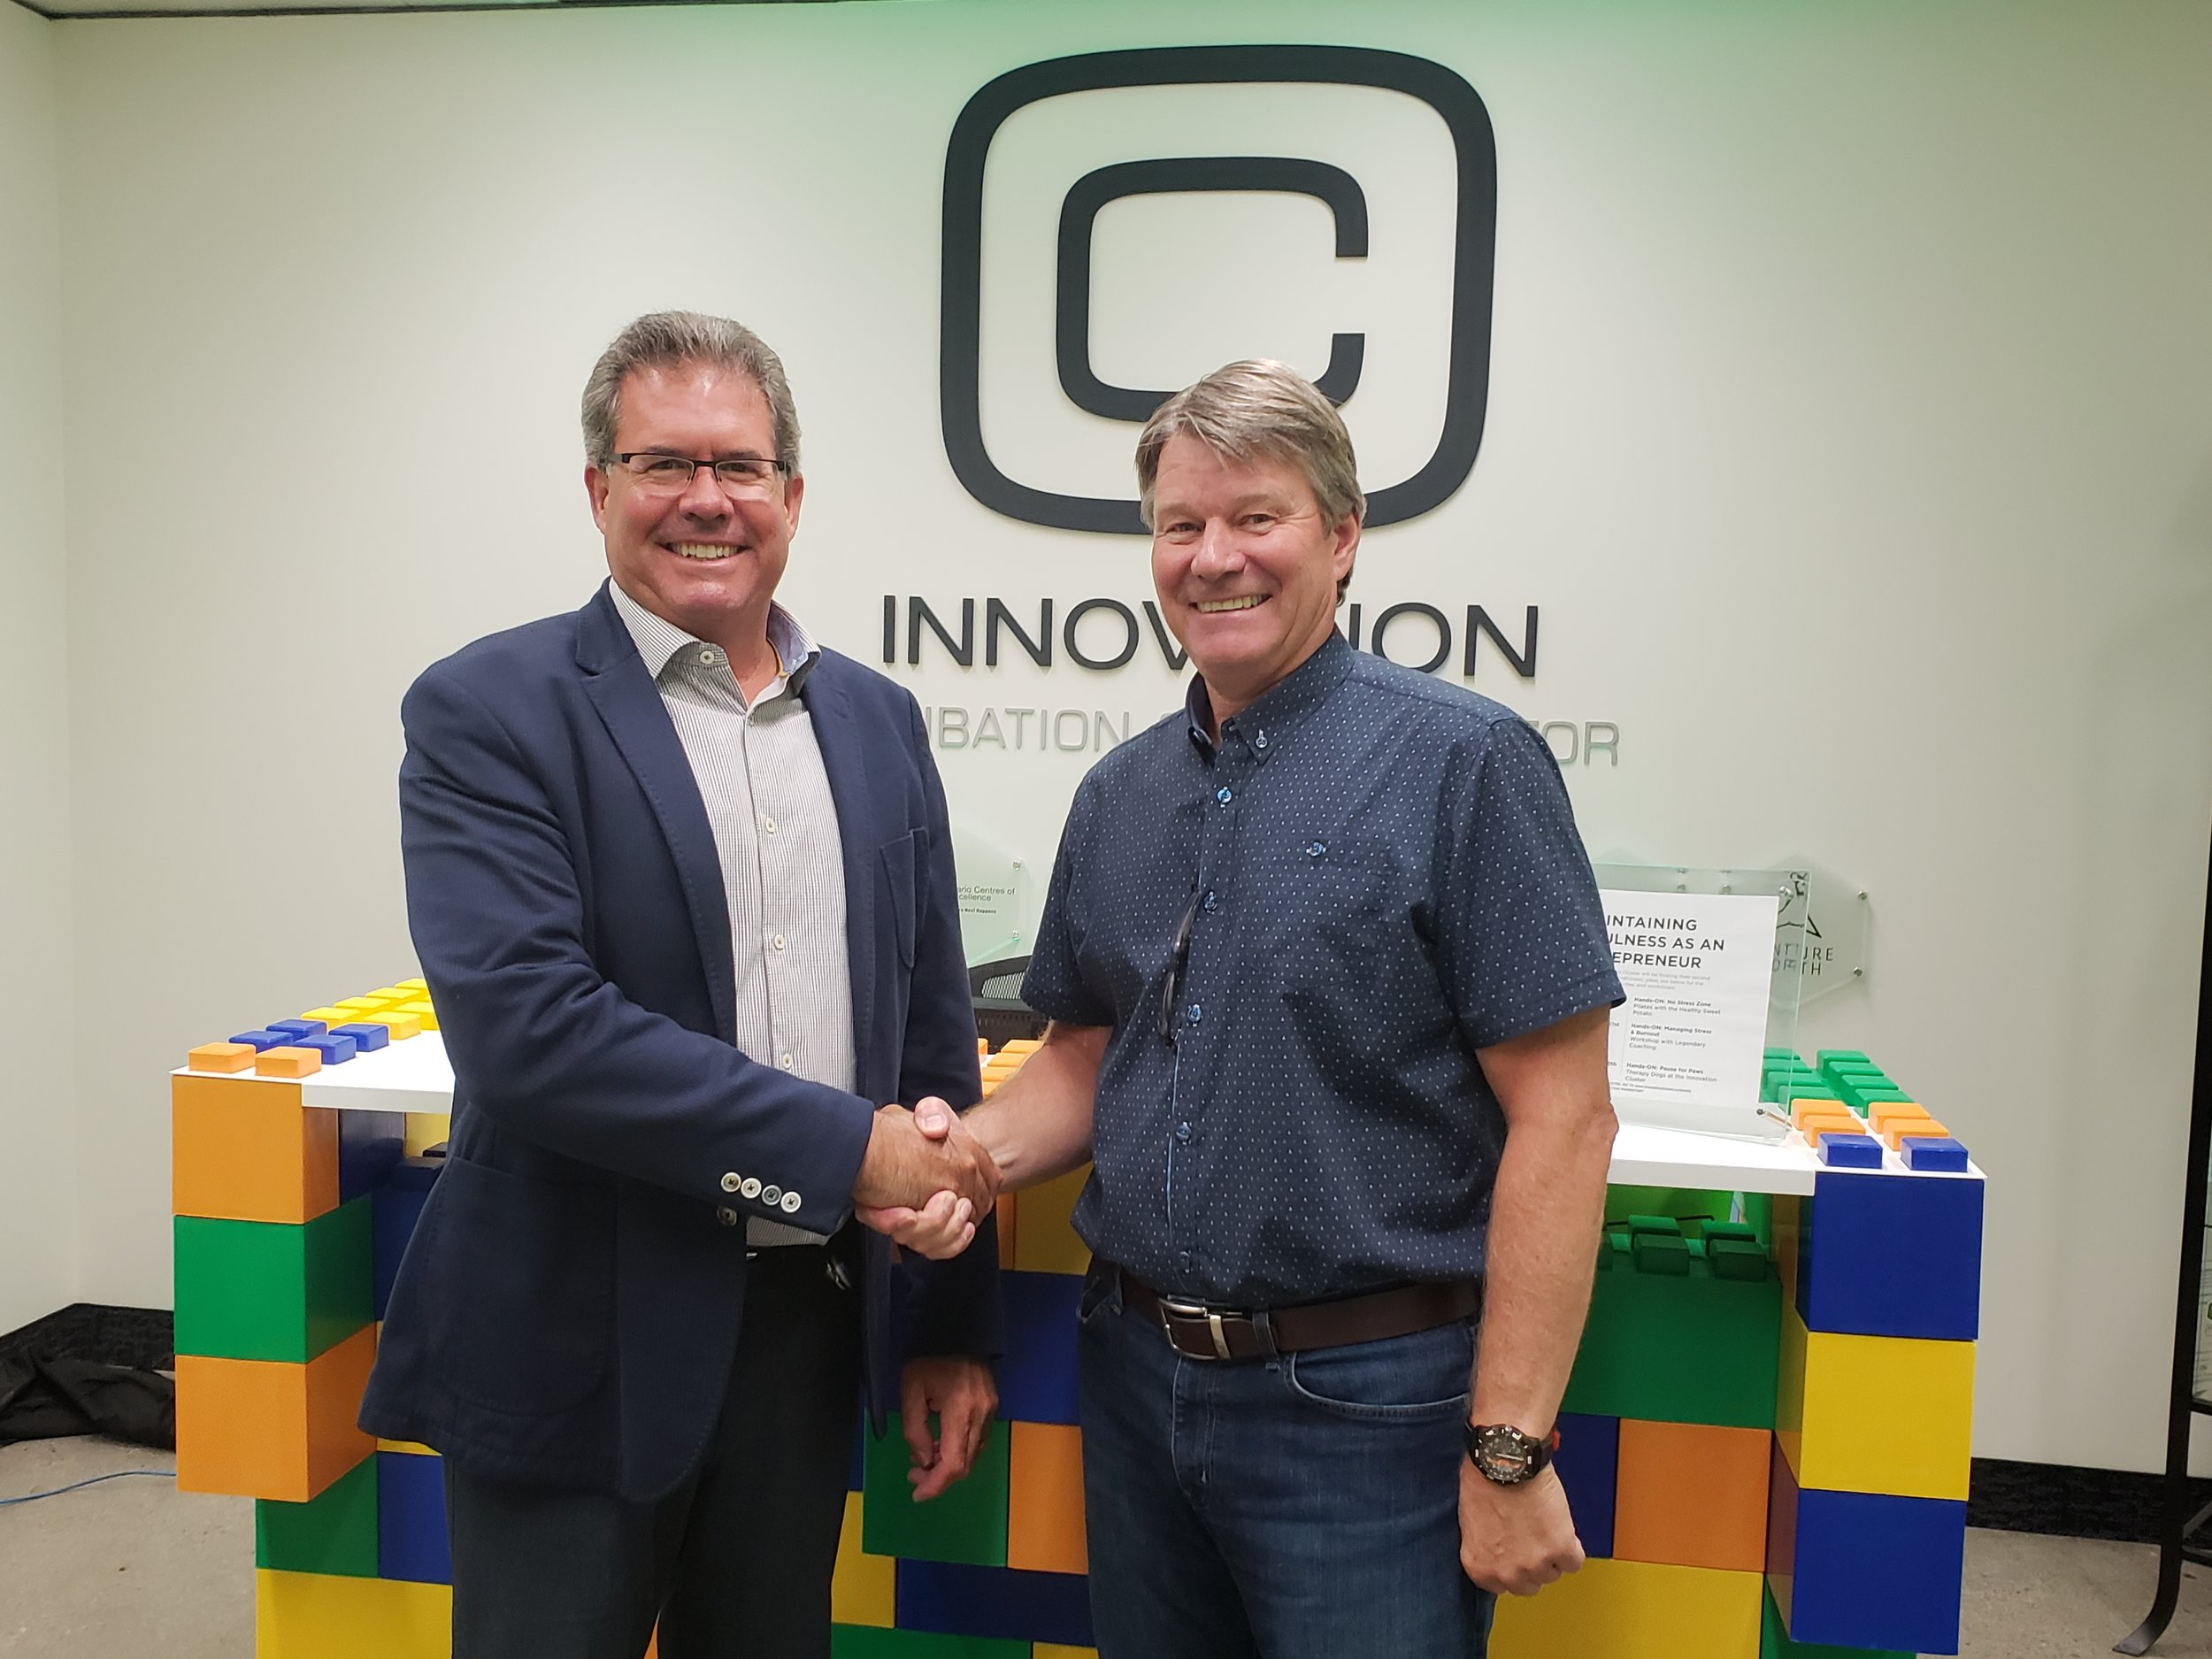 Pat Devlin and John Gillis at Innovation Cluster